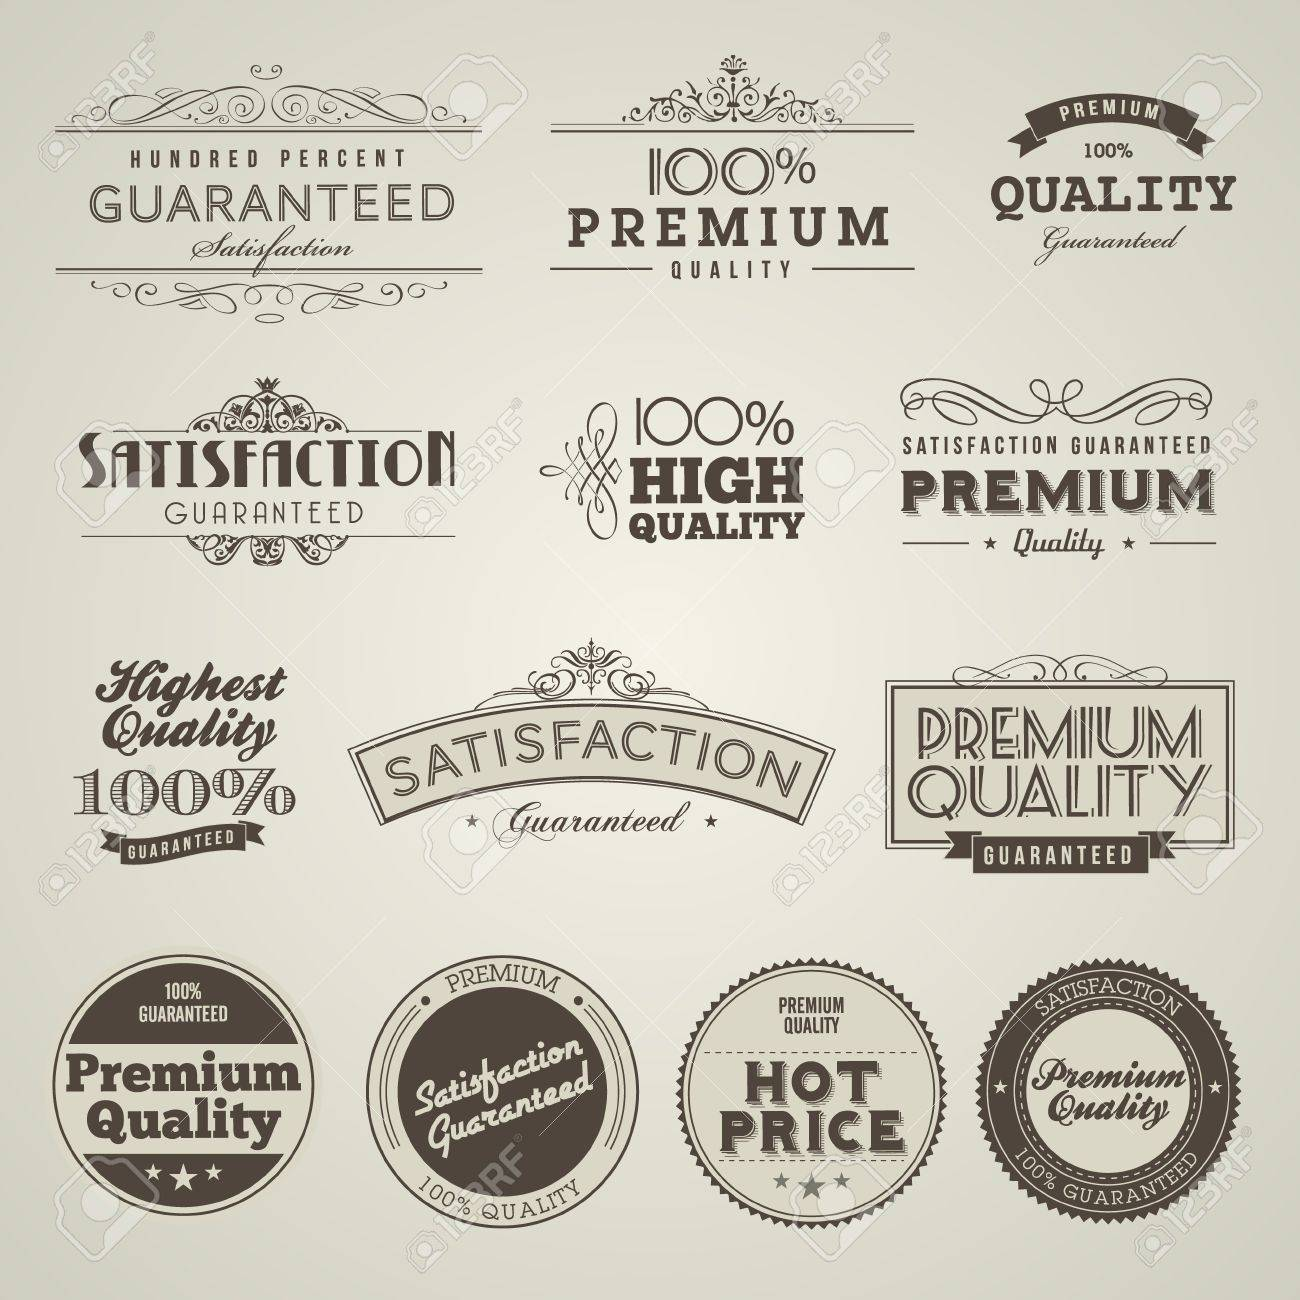 Vintage Styled Premium Quality labels - 11814284